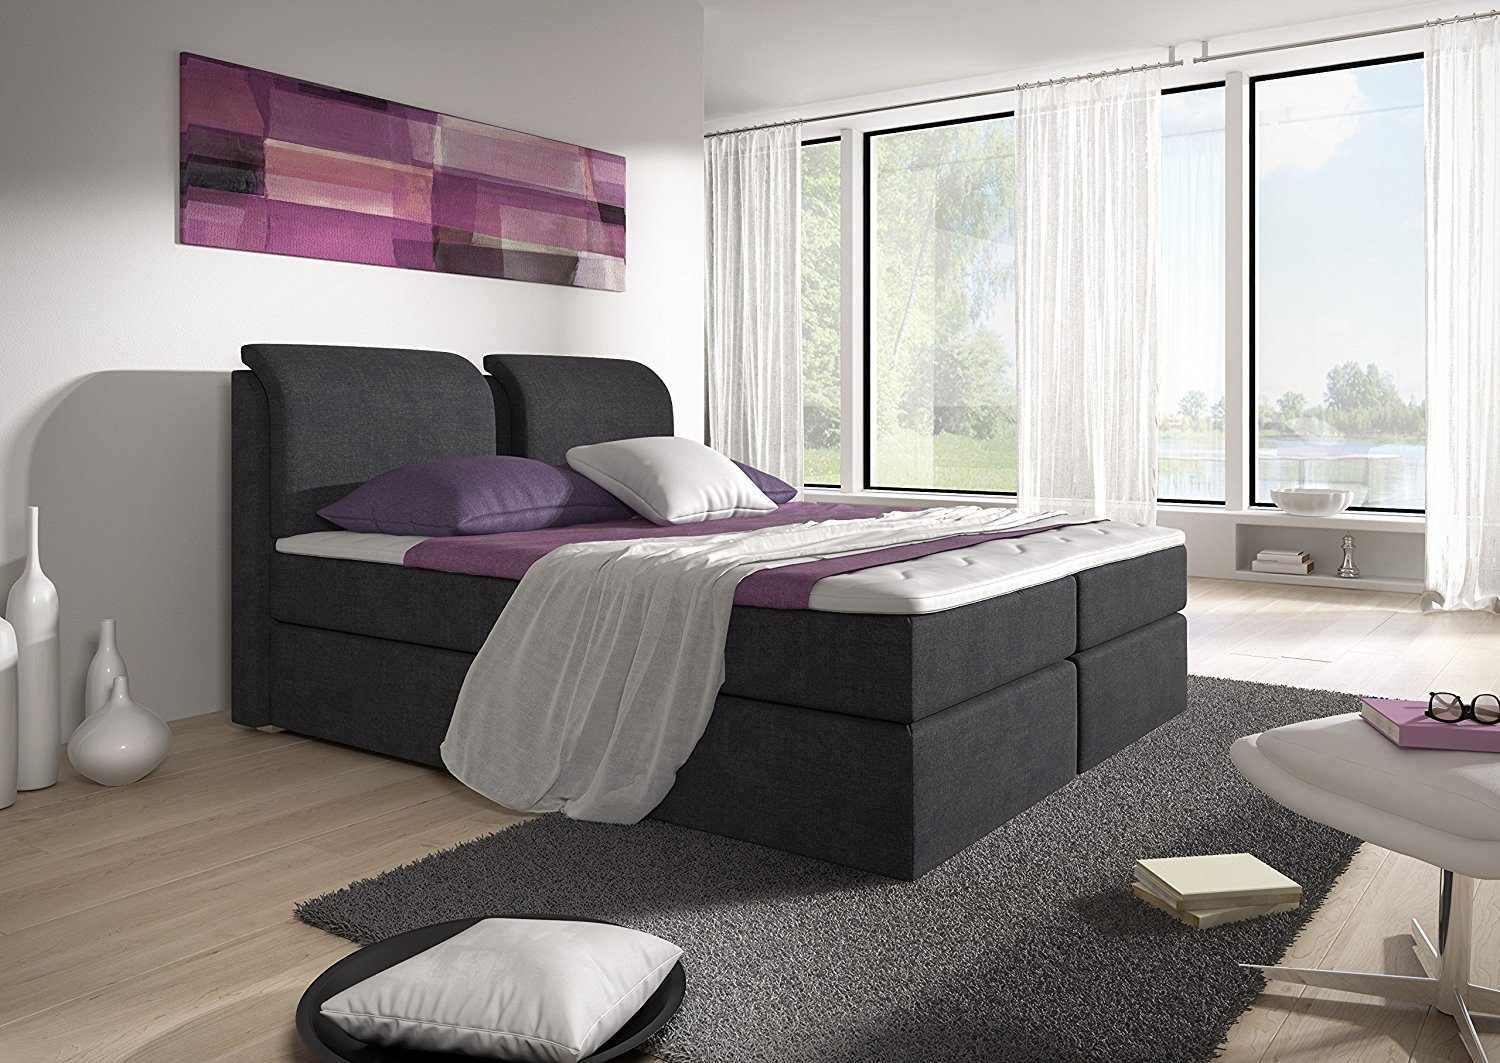 stilea visco memory boxspringbett im test 2018 expertentesten. Black Bedroom Furniture Sets. Home Design Ideas